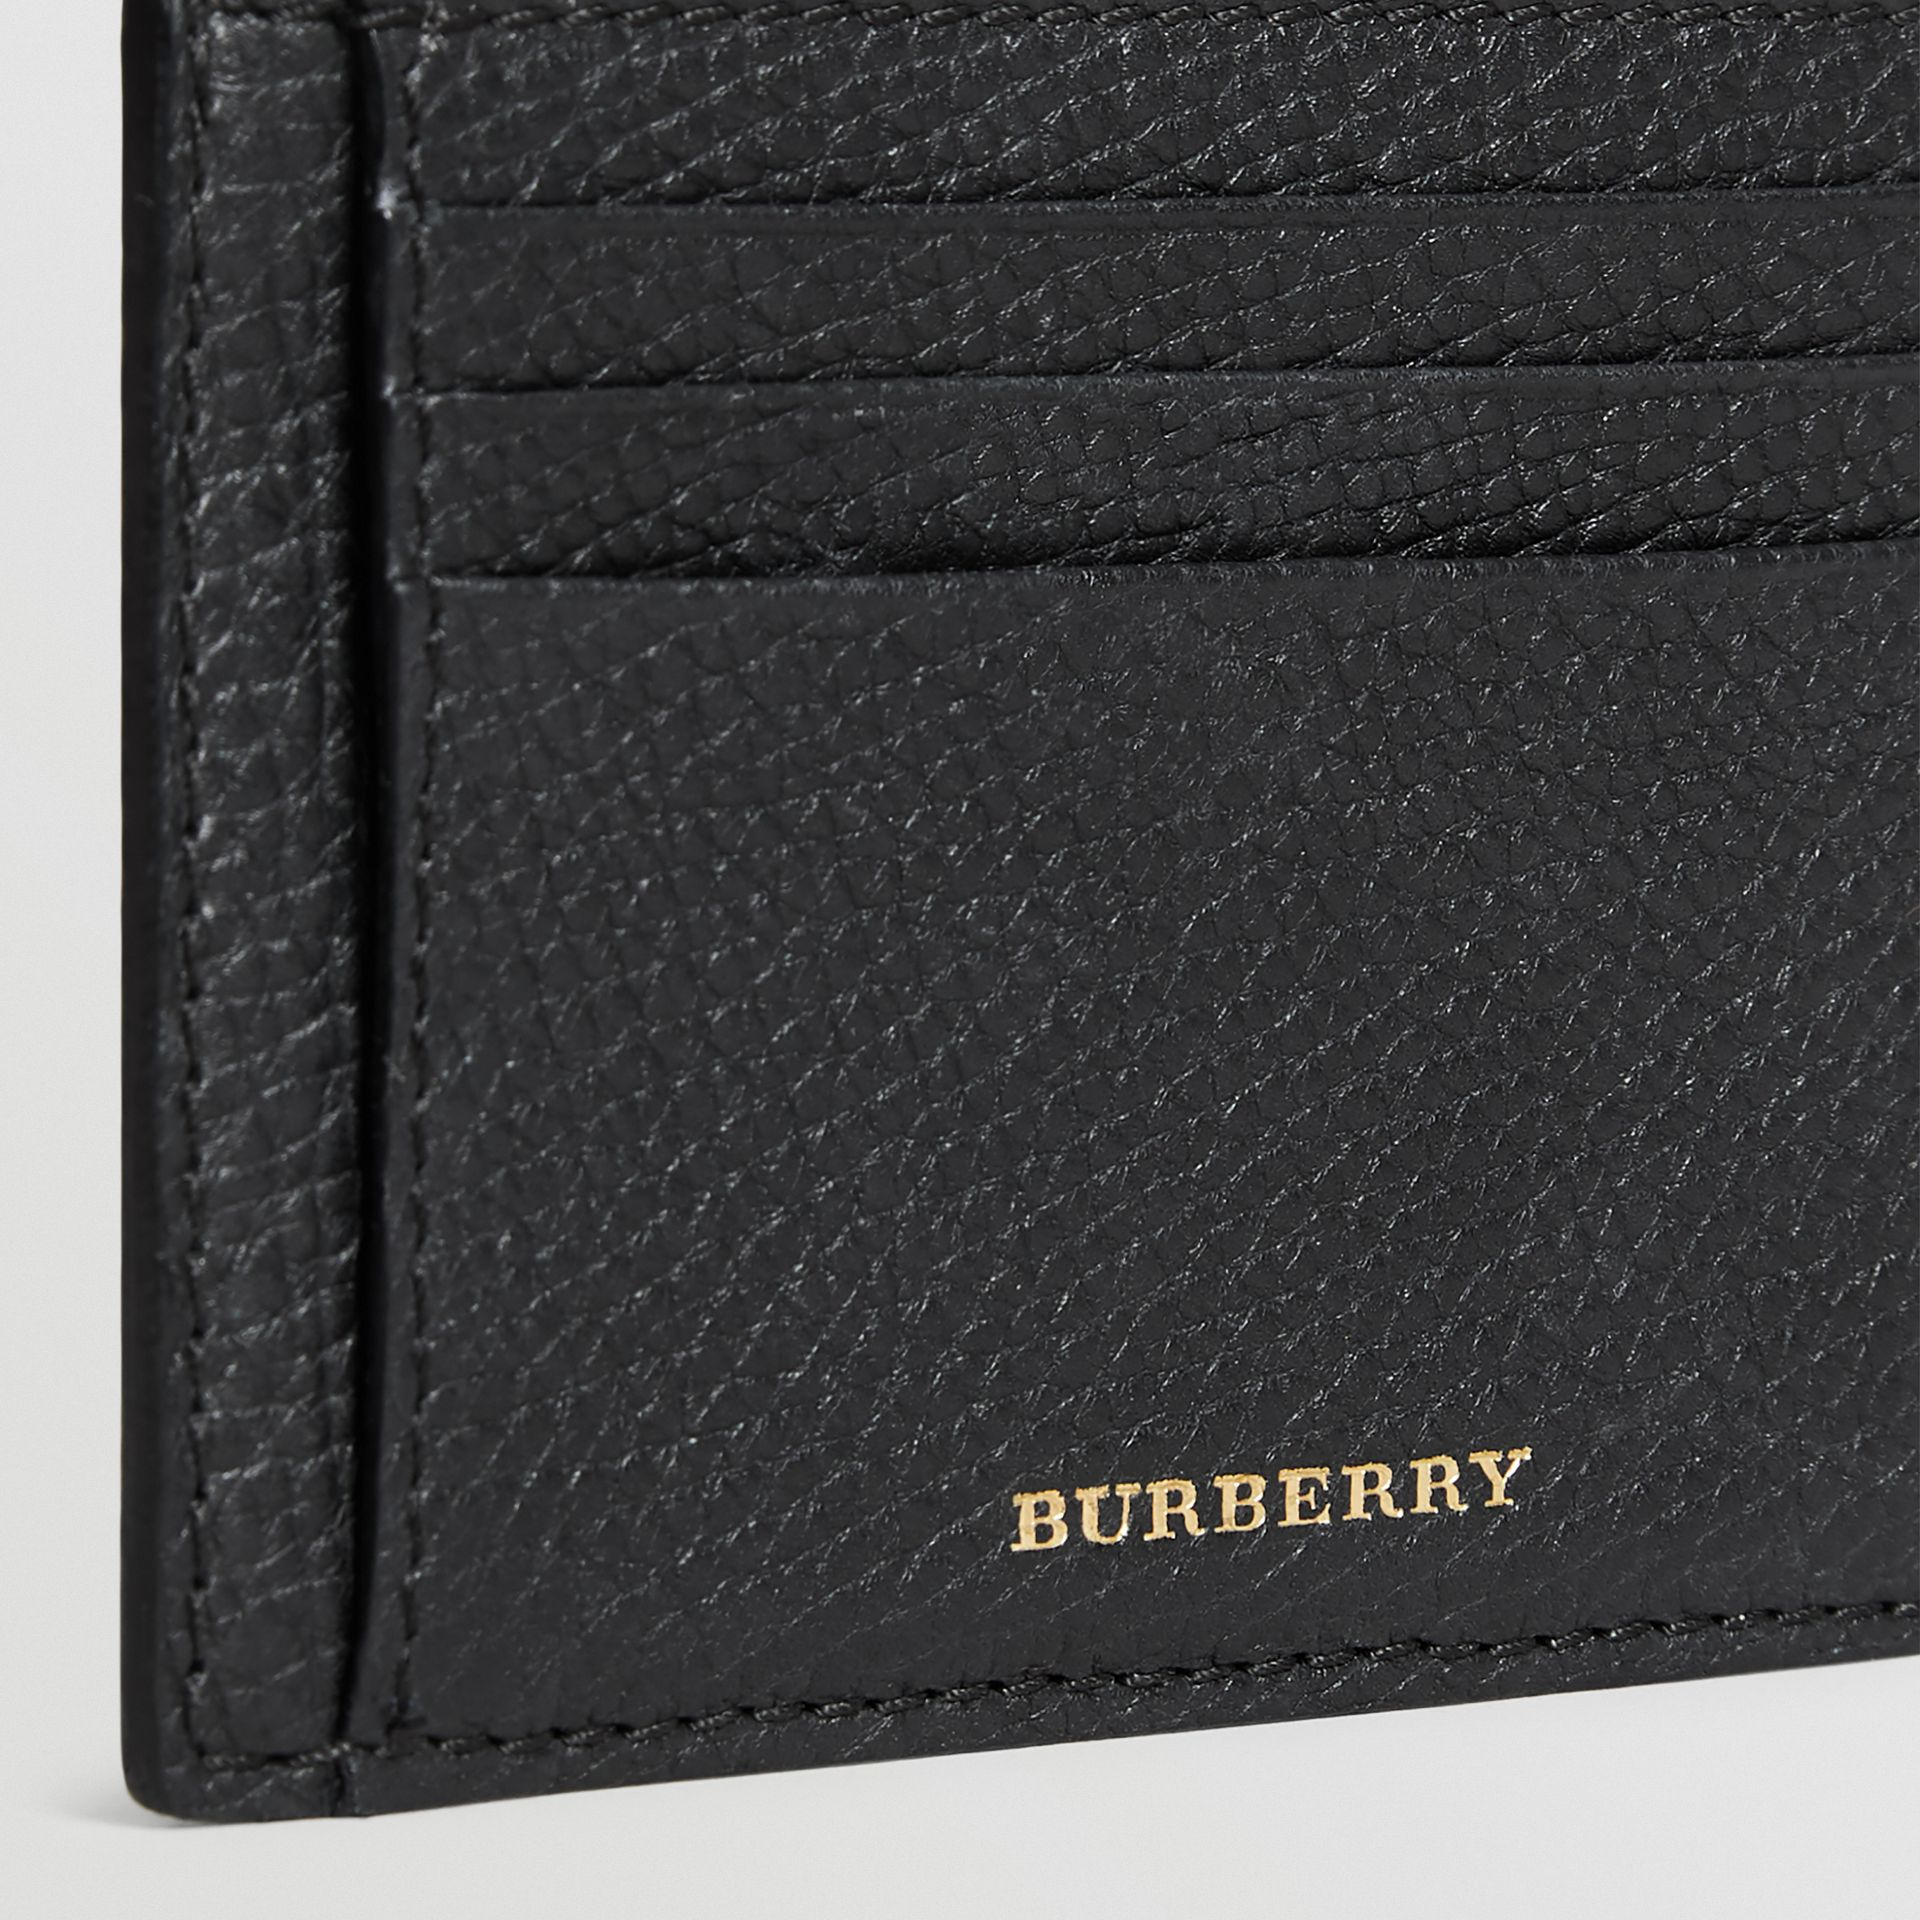 House Check and Leather Money Clip Card Case in Black - Men | Burberry - gallery image 4